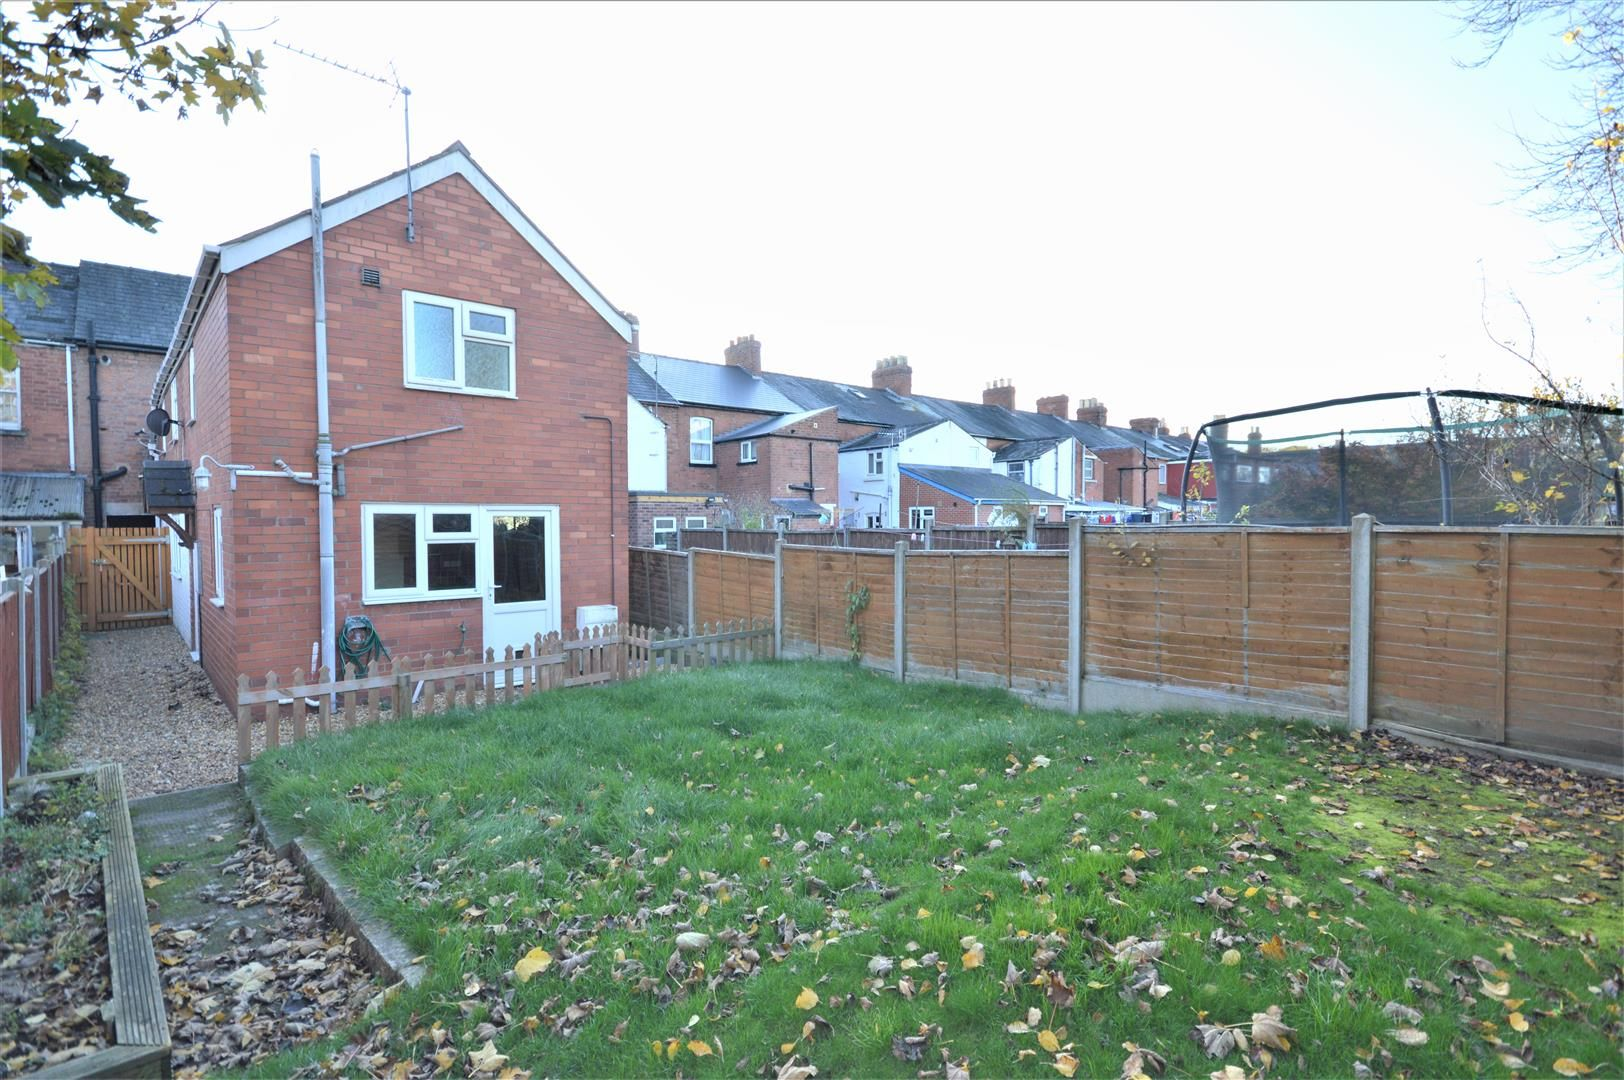 3 bed link-detached-house for sale in Whitecross, HR4